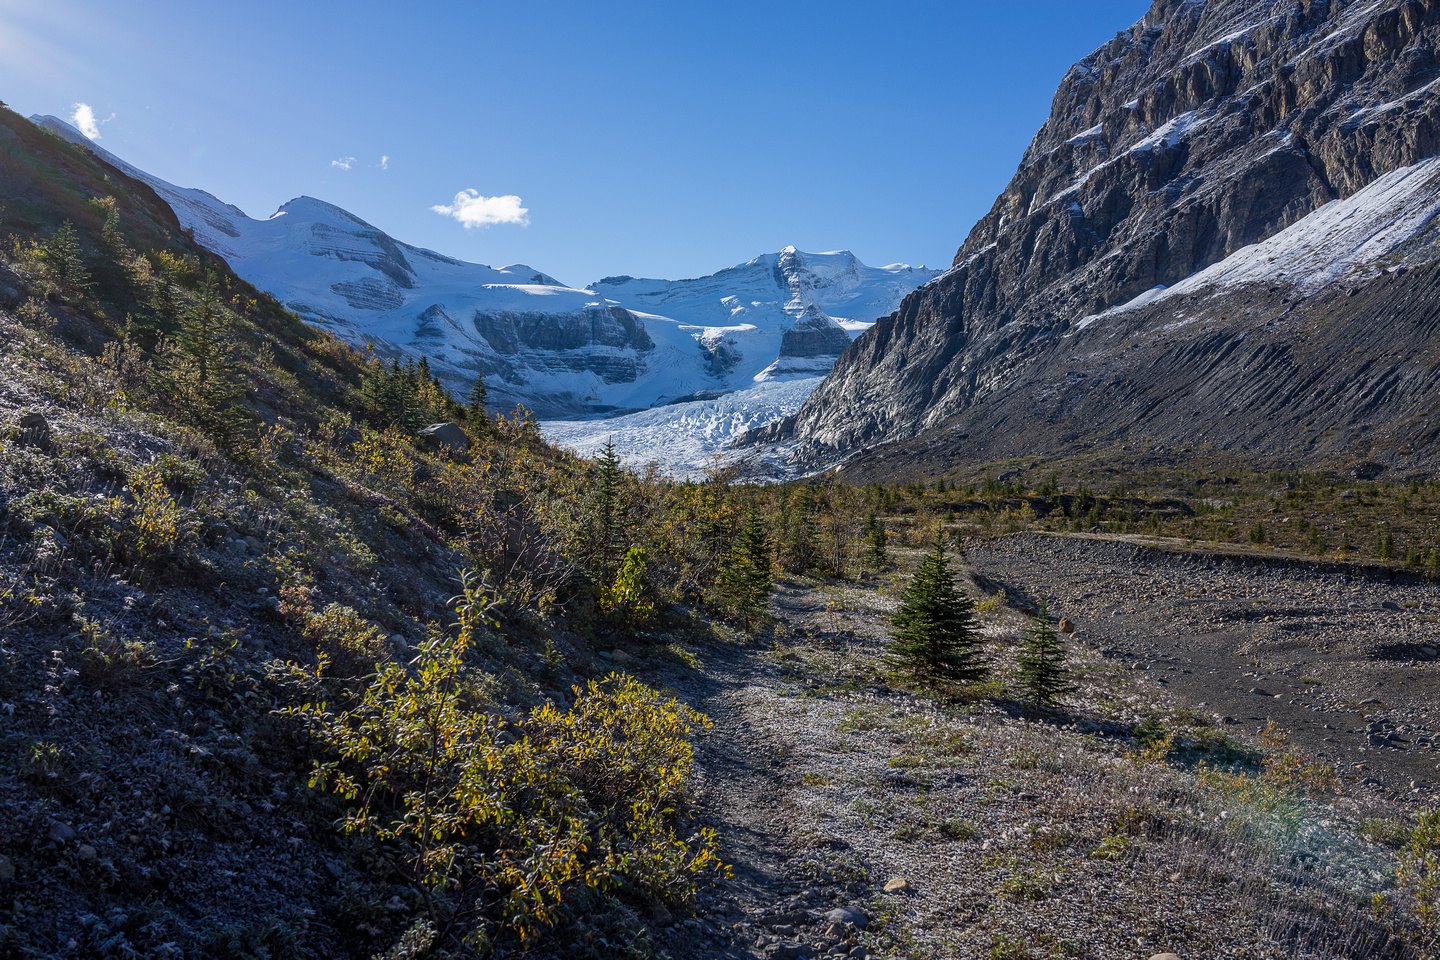 The trail approaches the Robson Glacier - still a long ways off though, considering 60 years ago it covered this area